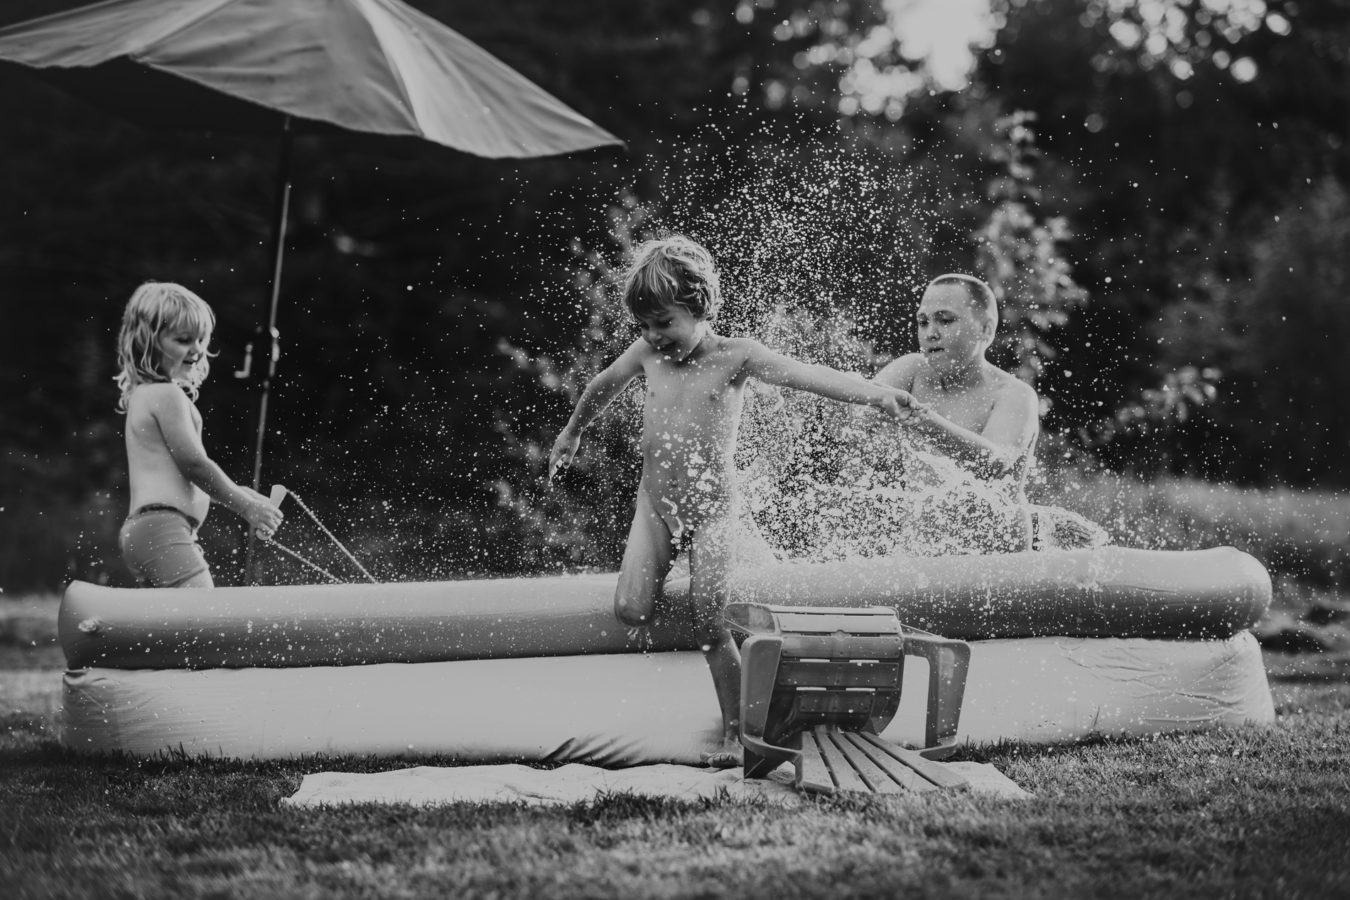 three kids splashing and playing in a small outdoor pool